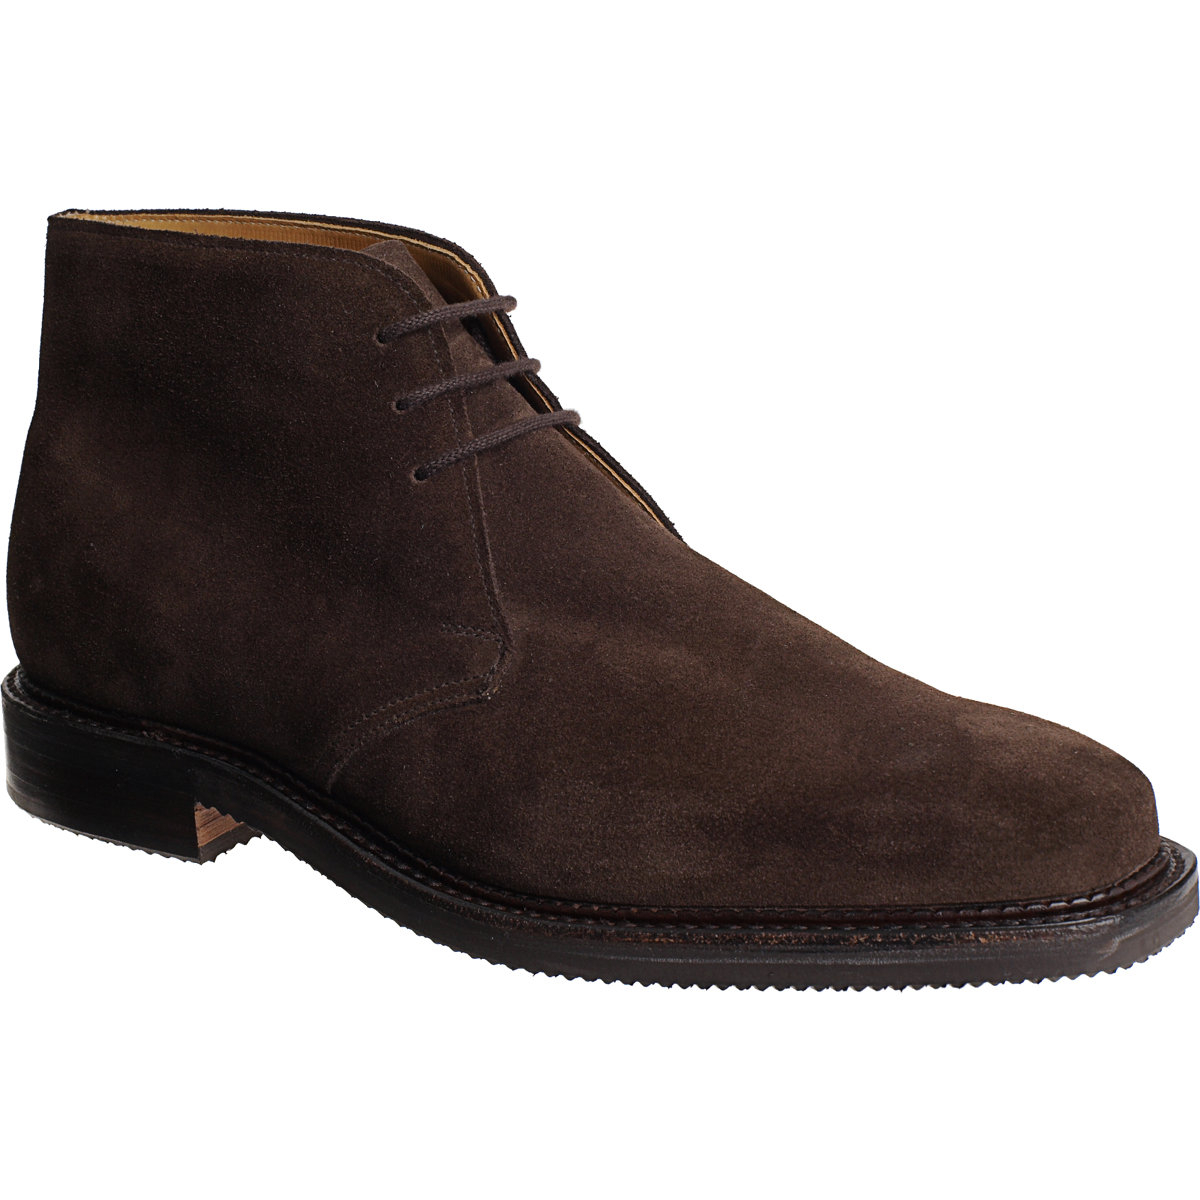 crockett and jones molton suede chukka boots in brown for